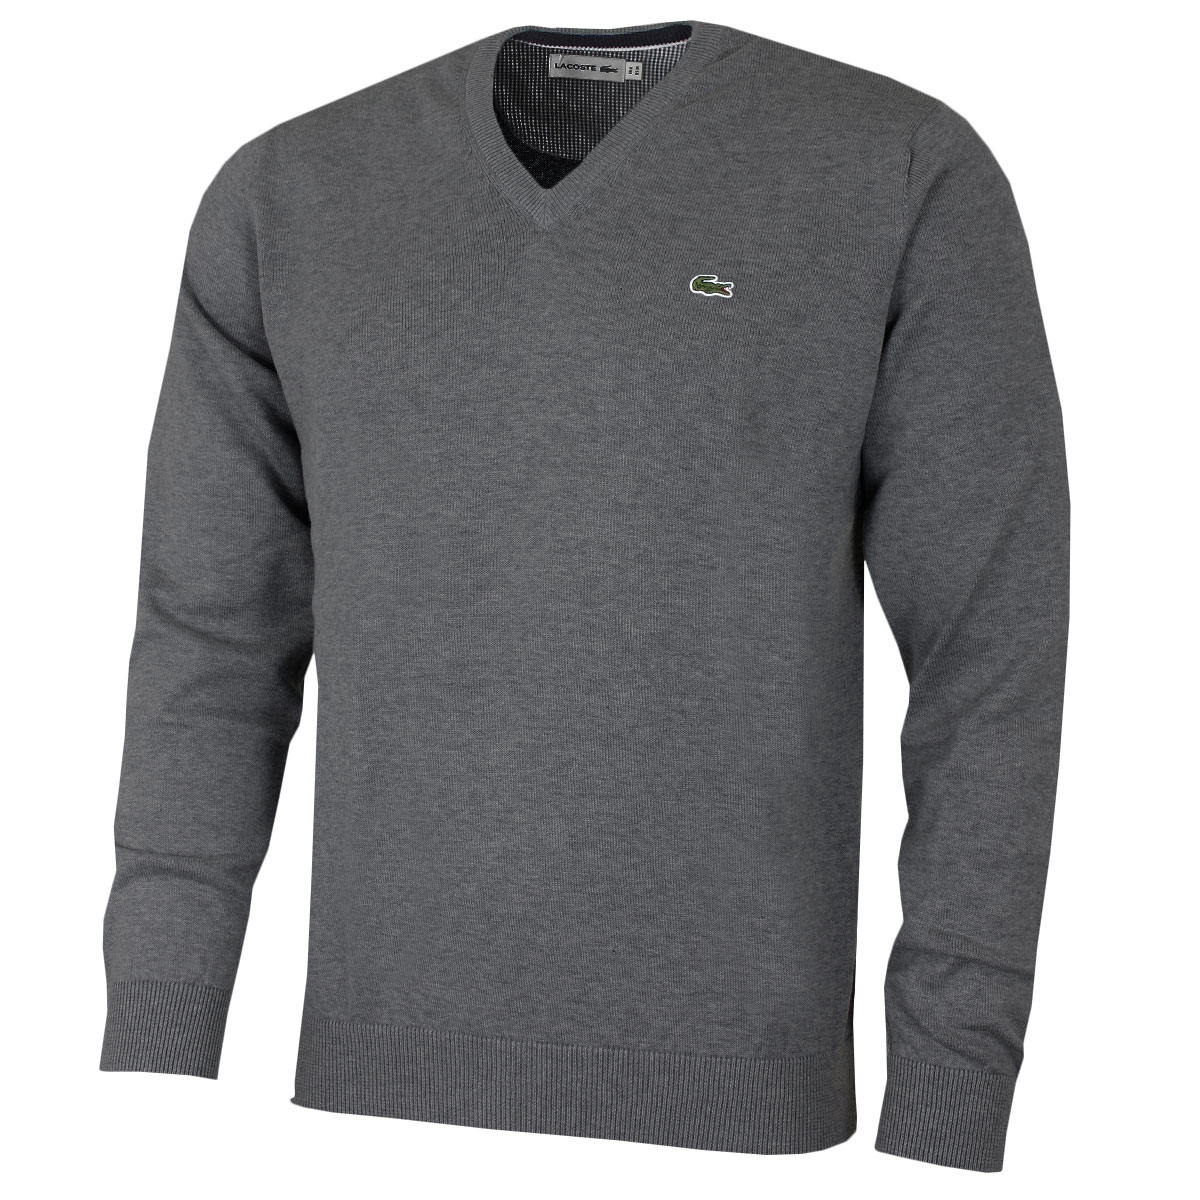 Lacoste-Mens-AH7369-V-Neck-Cotton-Sweater-Pullover-Jumper-25-OFF-RRP